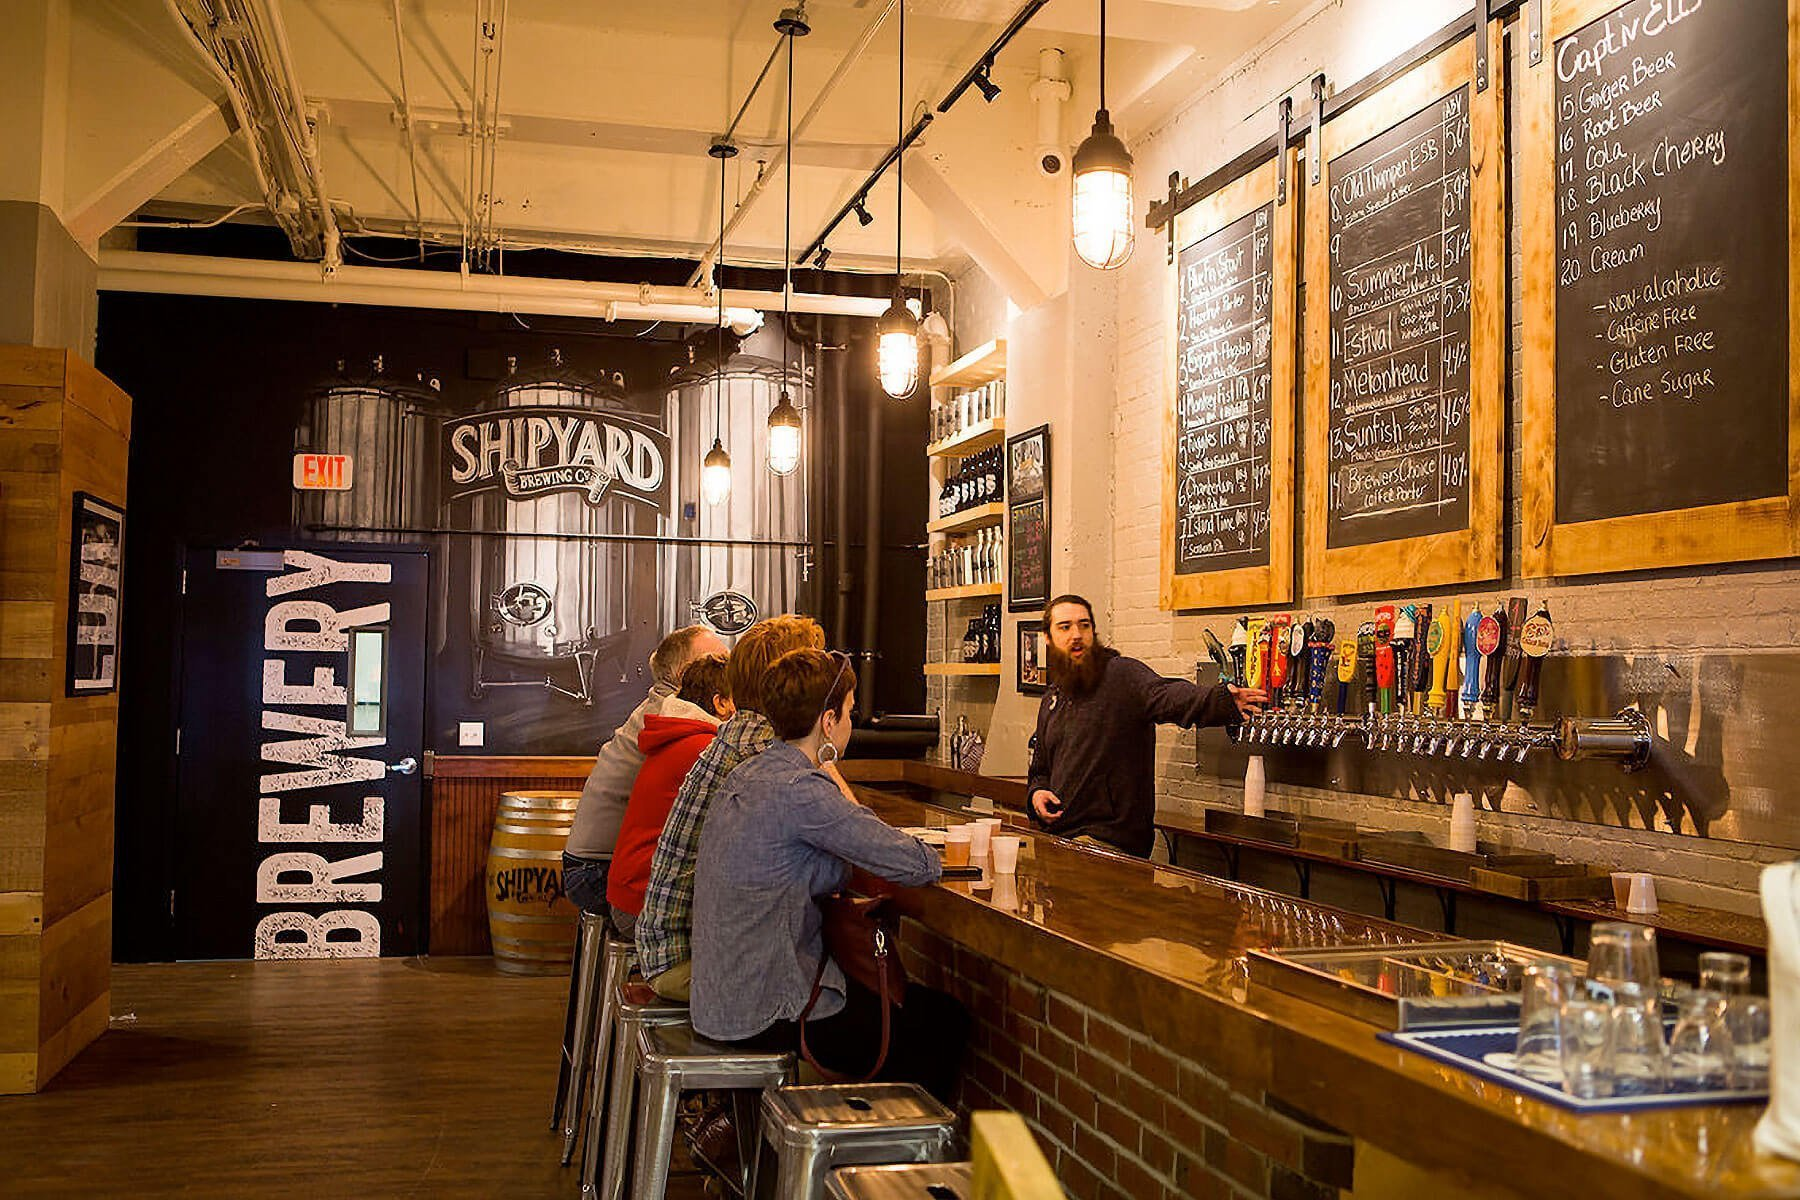 Inside the Taproom at Shipyard Brewing Co. in Portland, Maine